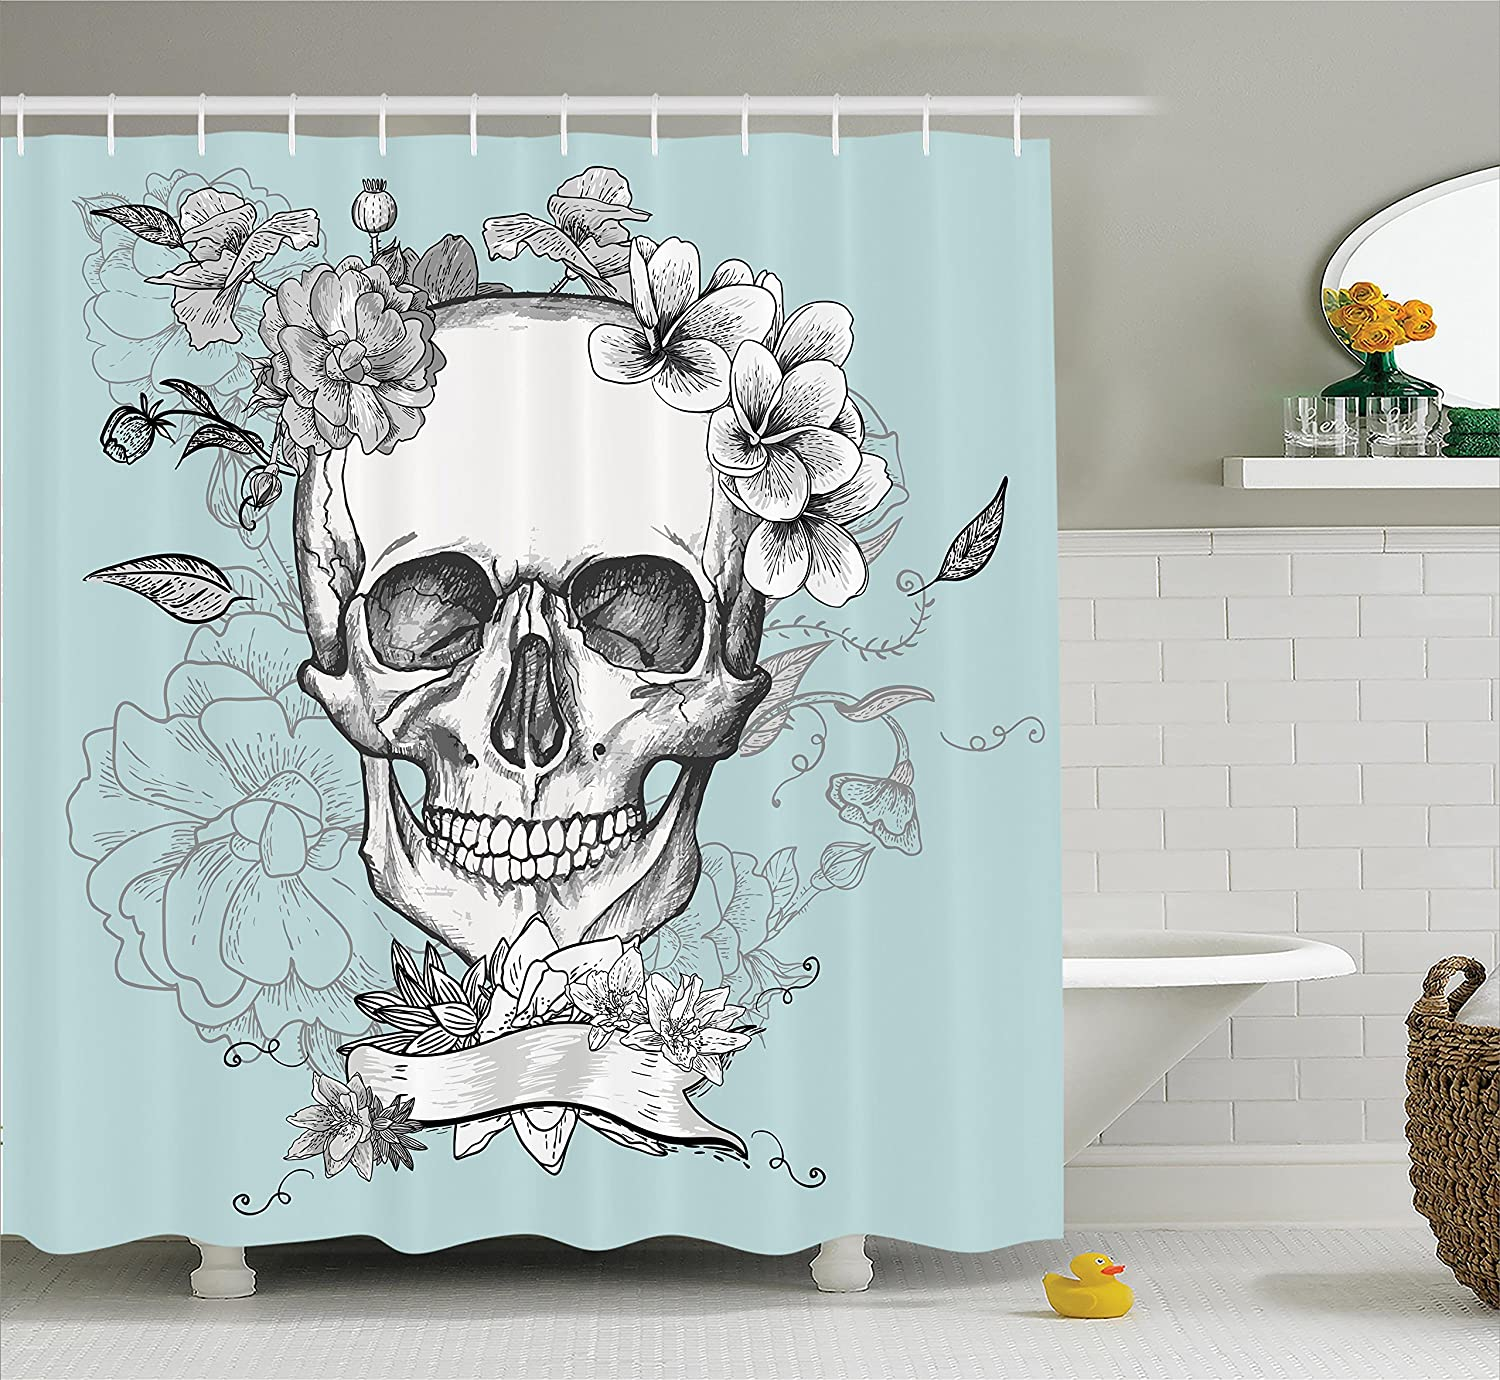 Amazon.com: Ambesonne Grunge Home Decor Shower Curtain Set, Skull ...